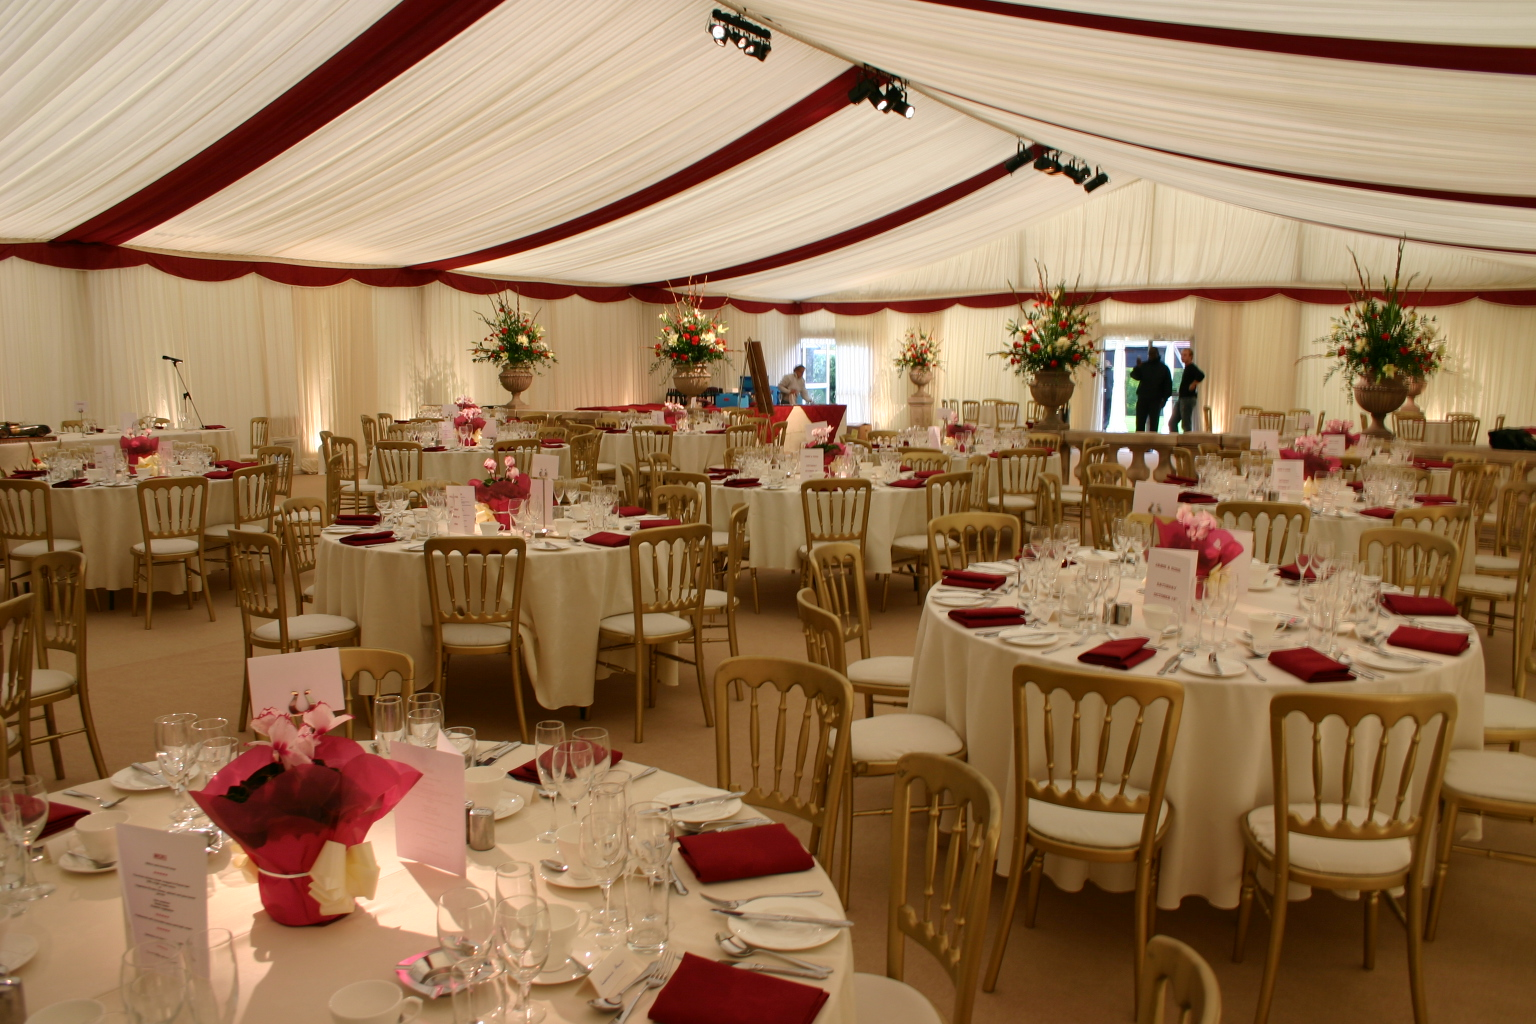 12m-wide-frame-tent-interior-pleated-ivory-linings-burgundy-roof-drapes-and-flat-scalloped-valance